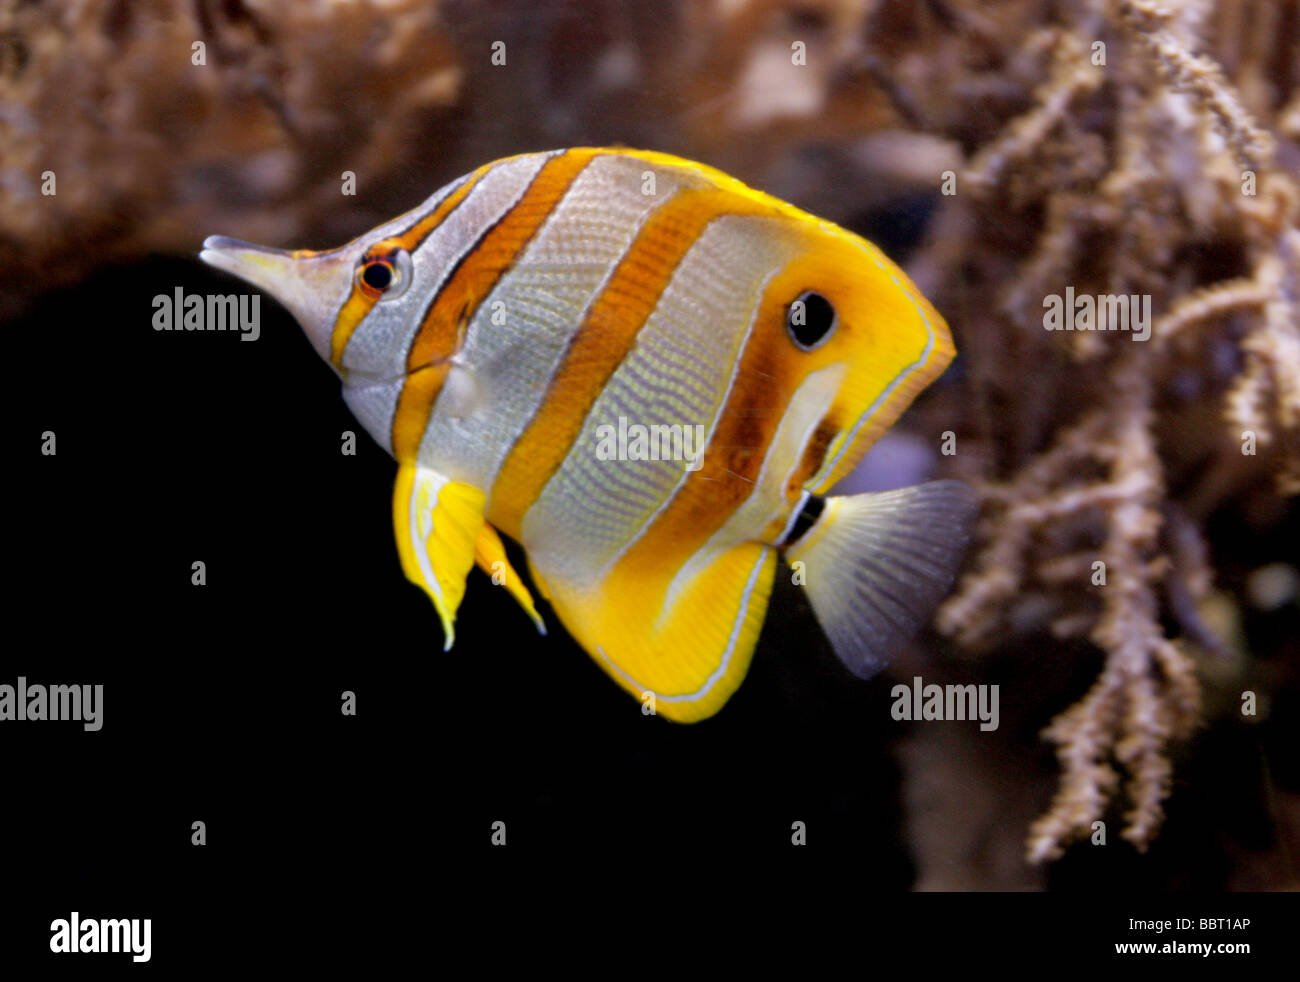 Copperband Butterflyfish, Copper-banded Butterflyfish, Beaked Butterflyfish or Beak Coralfish, Chelmon rostratus, - Stock Image